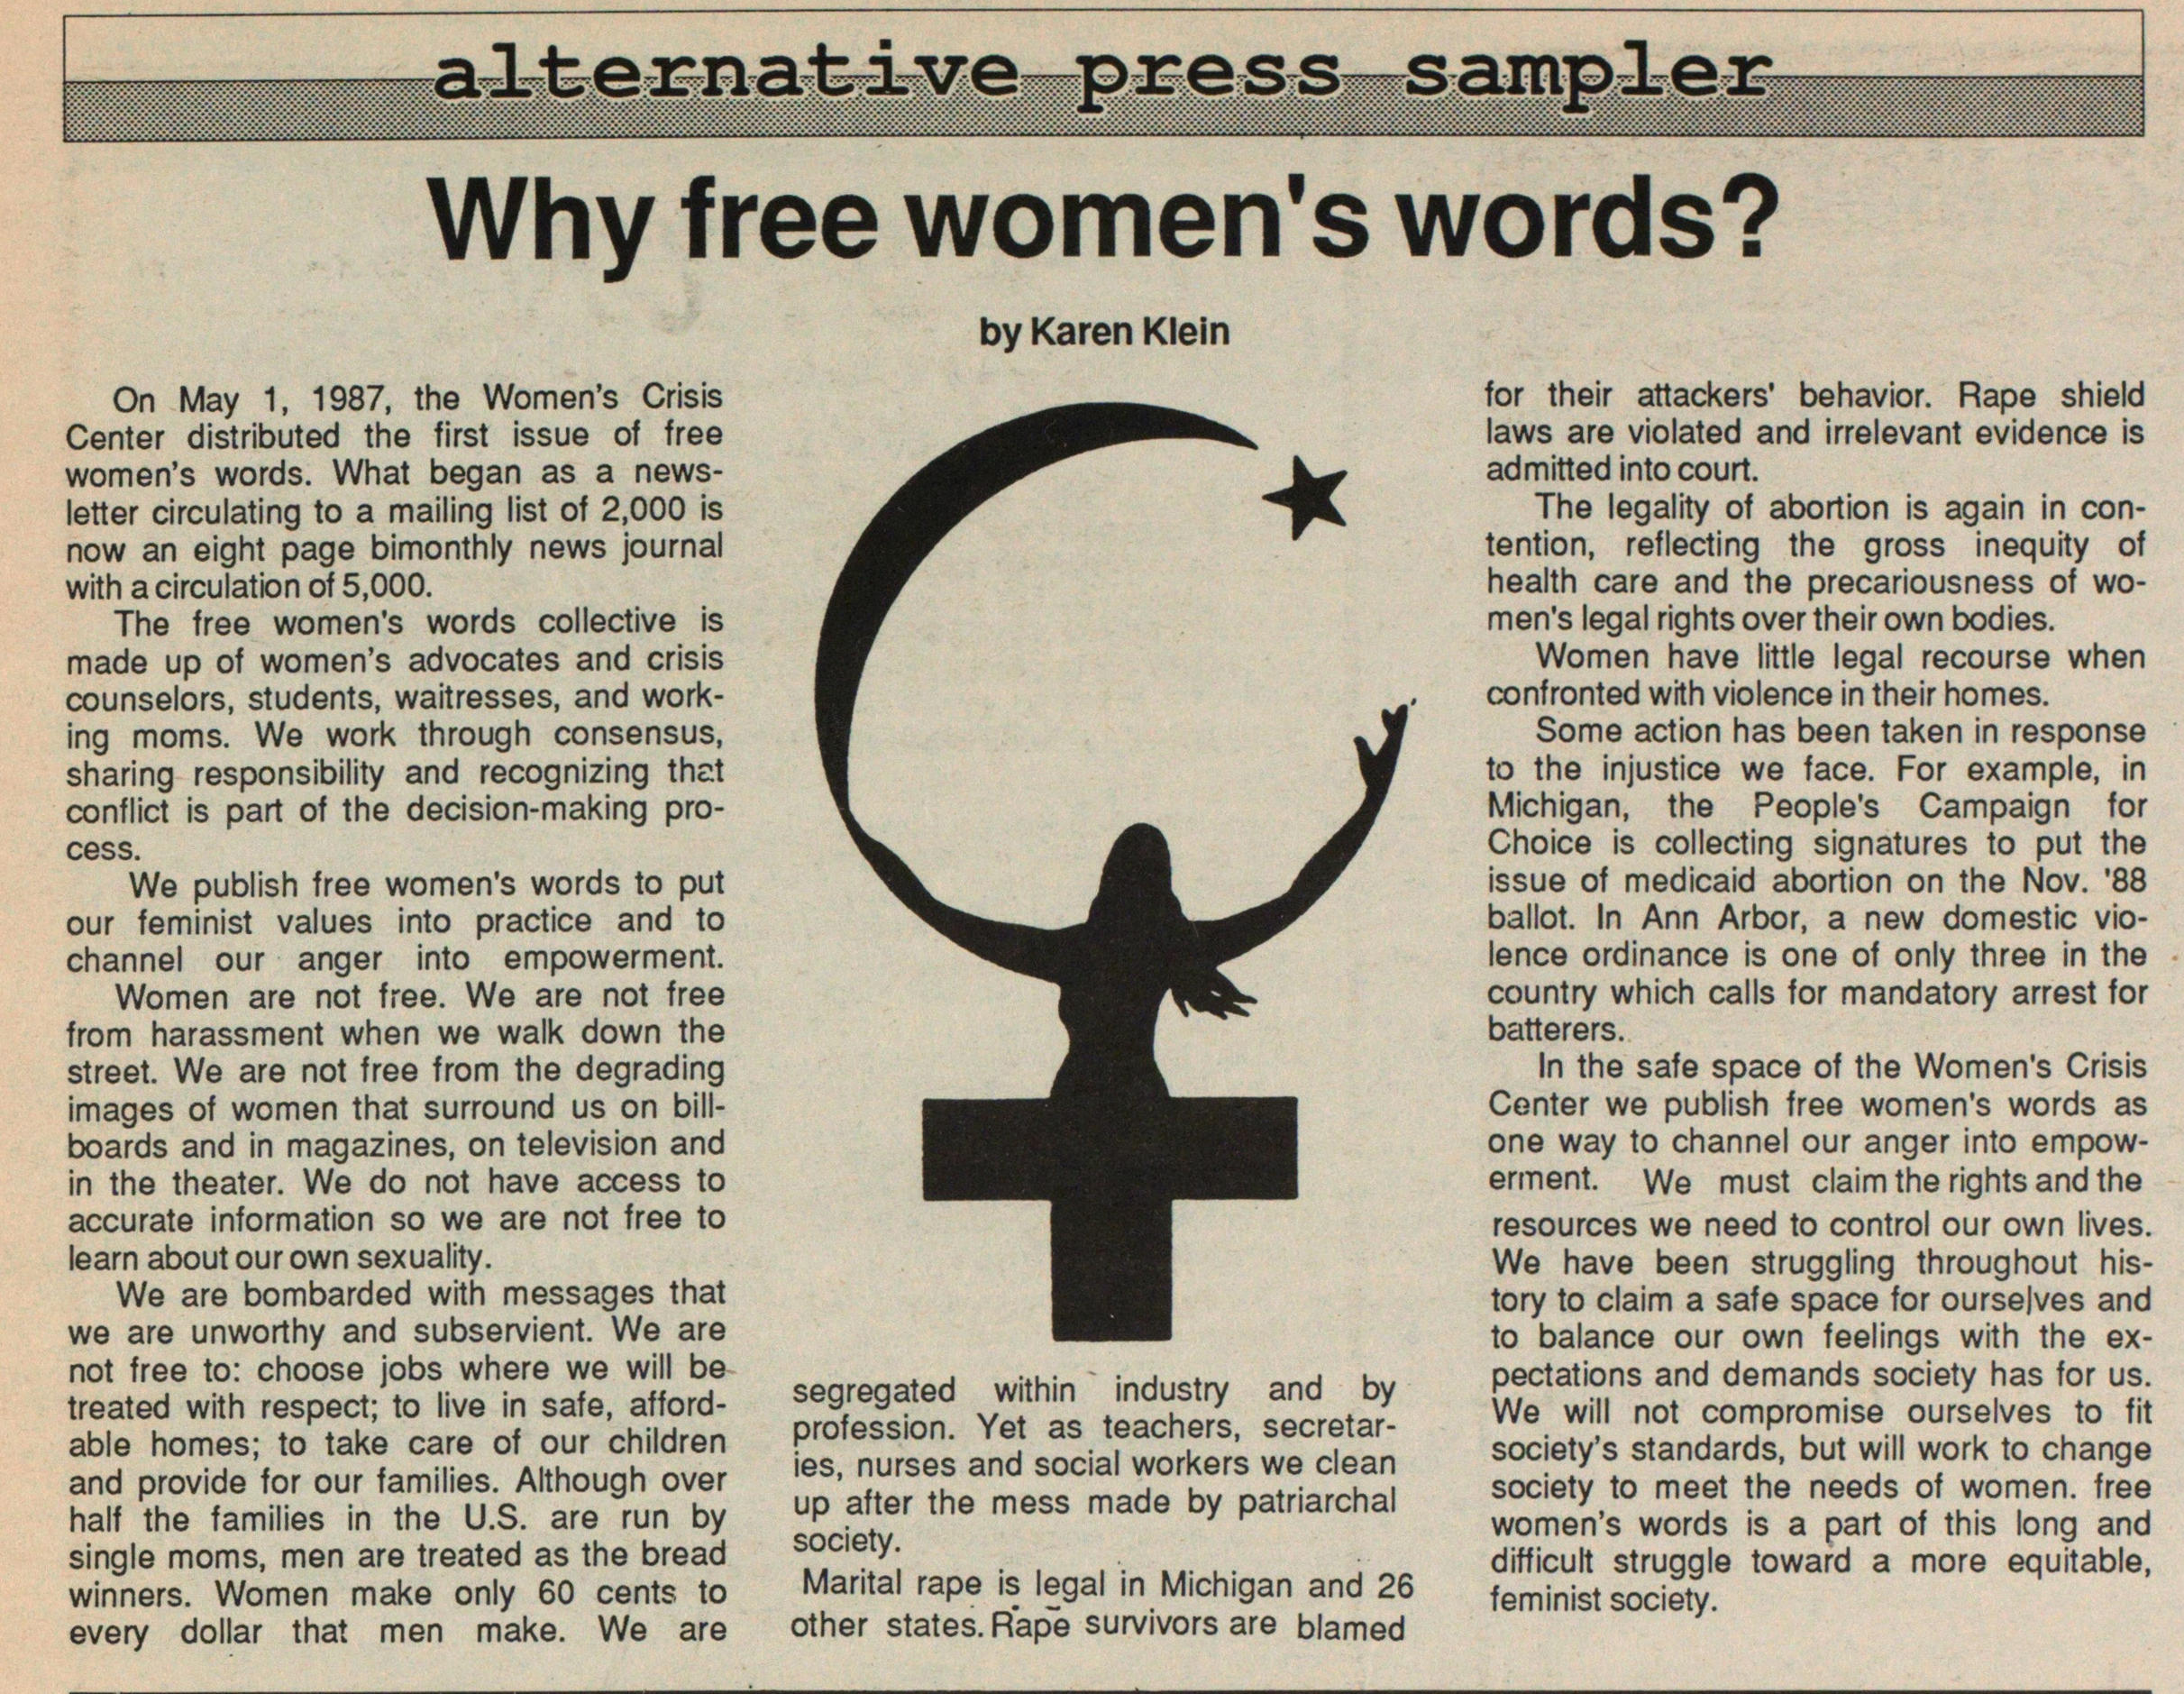 Why Free Women's Words? image